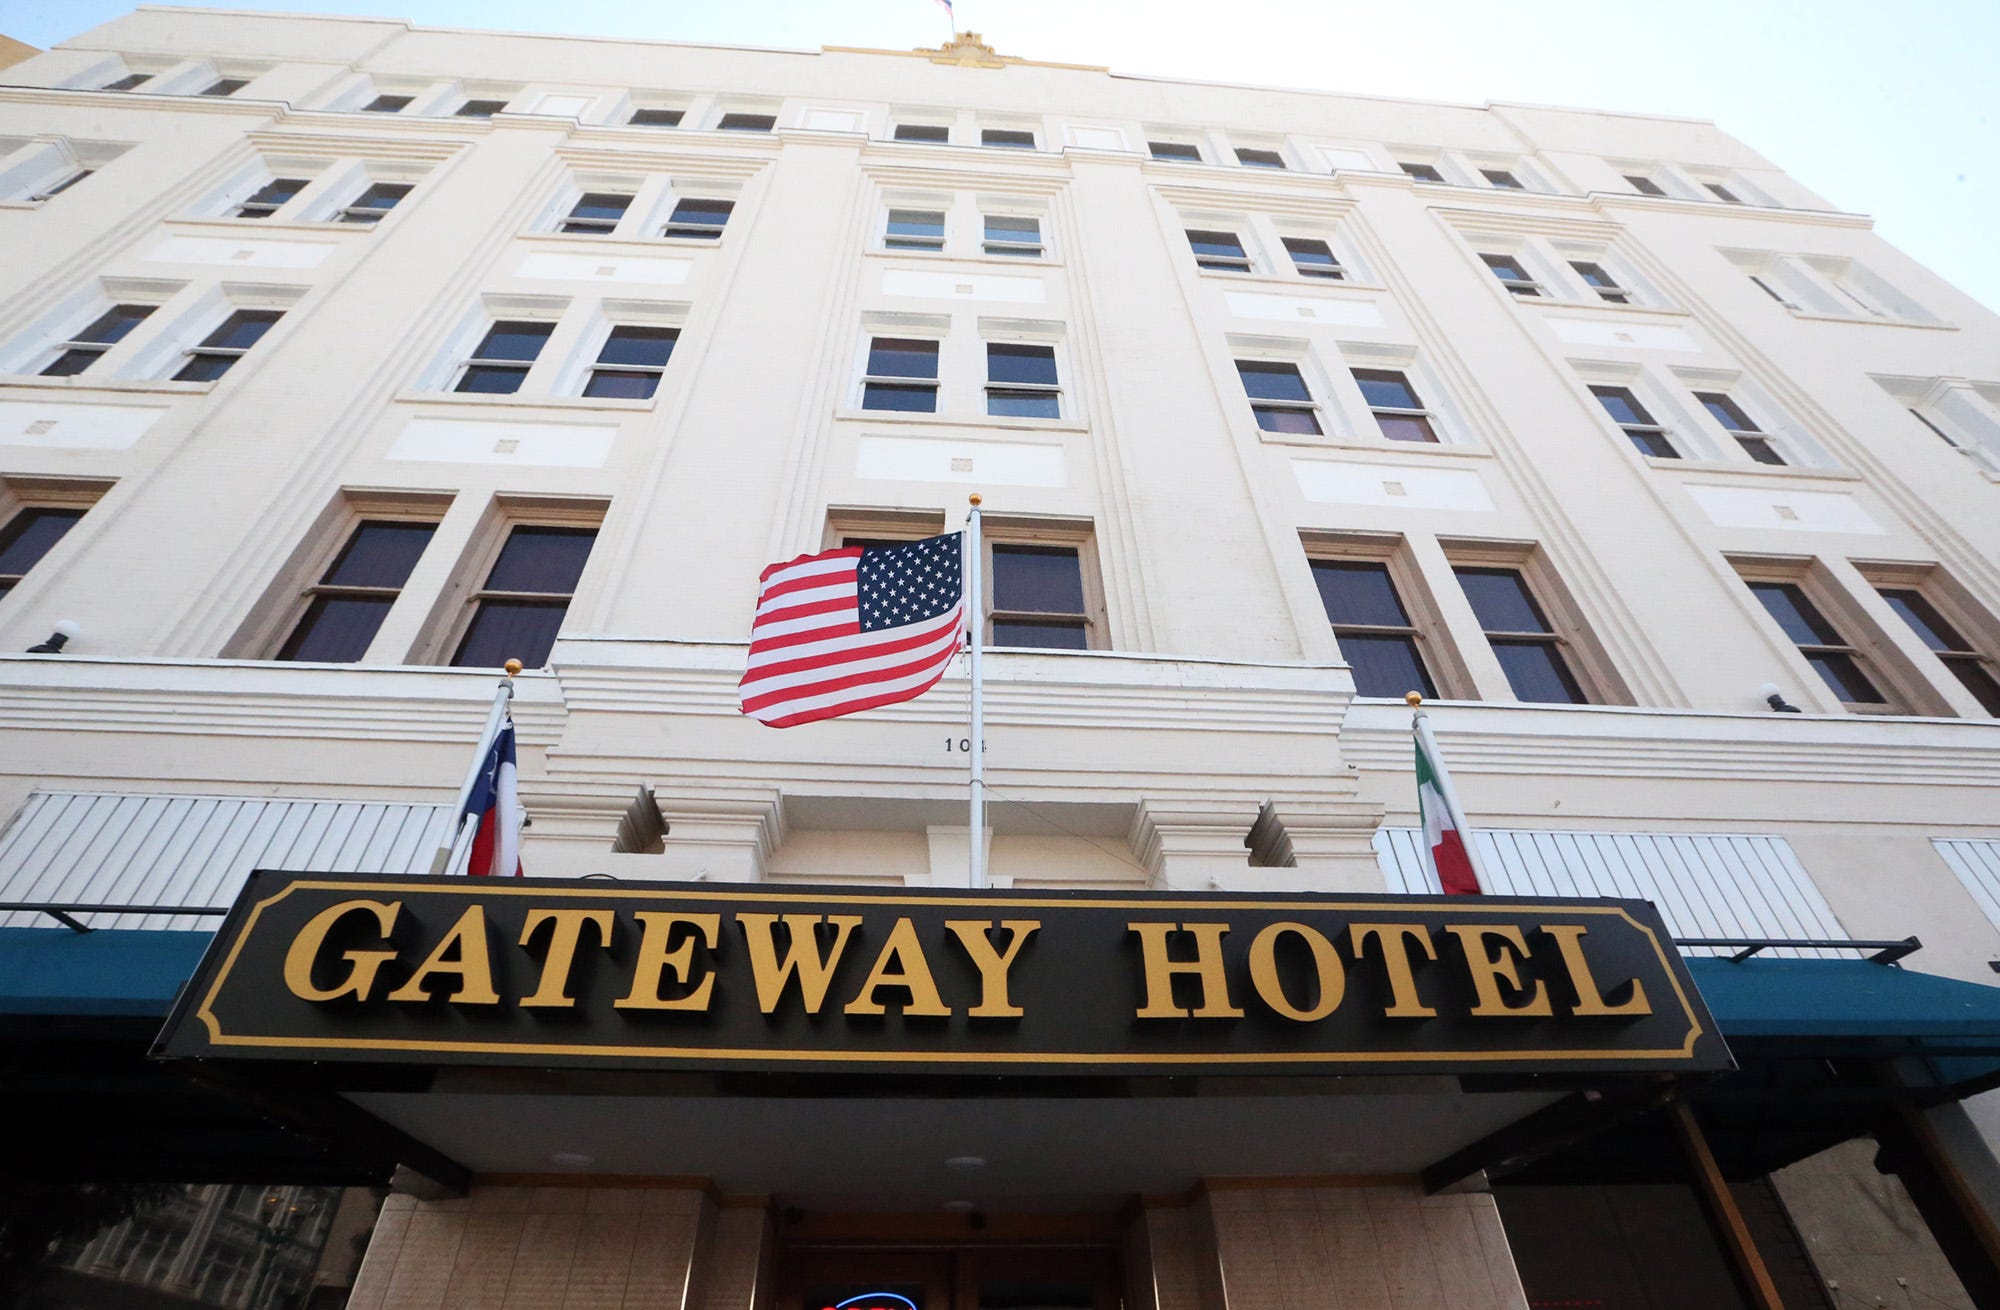 El Paso Gateway Hotel restoration an ongoing labor of love for South Korean immigrant | El Paso Times